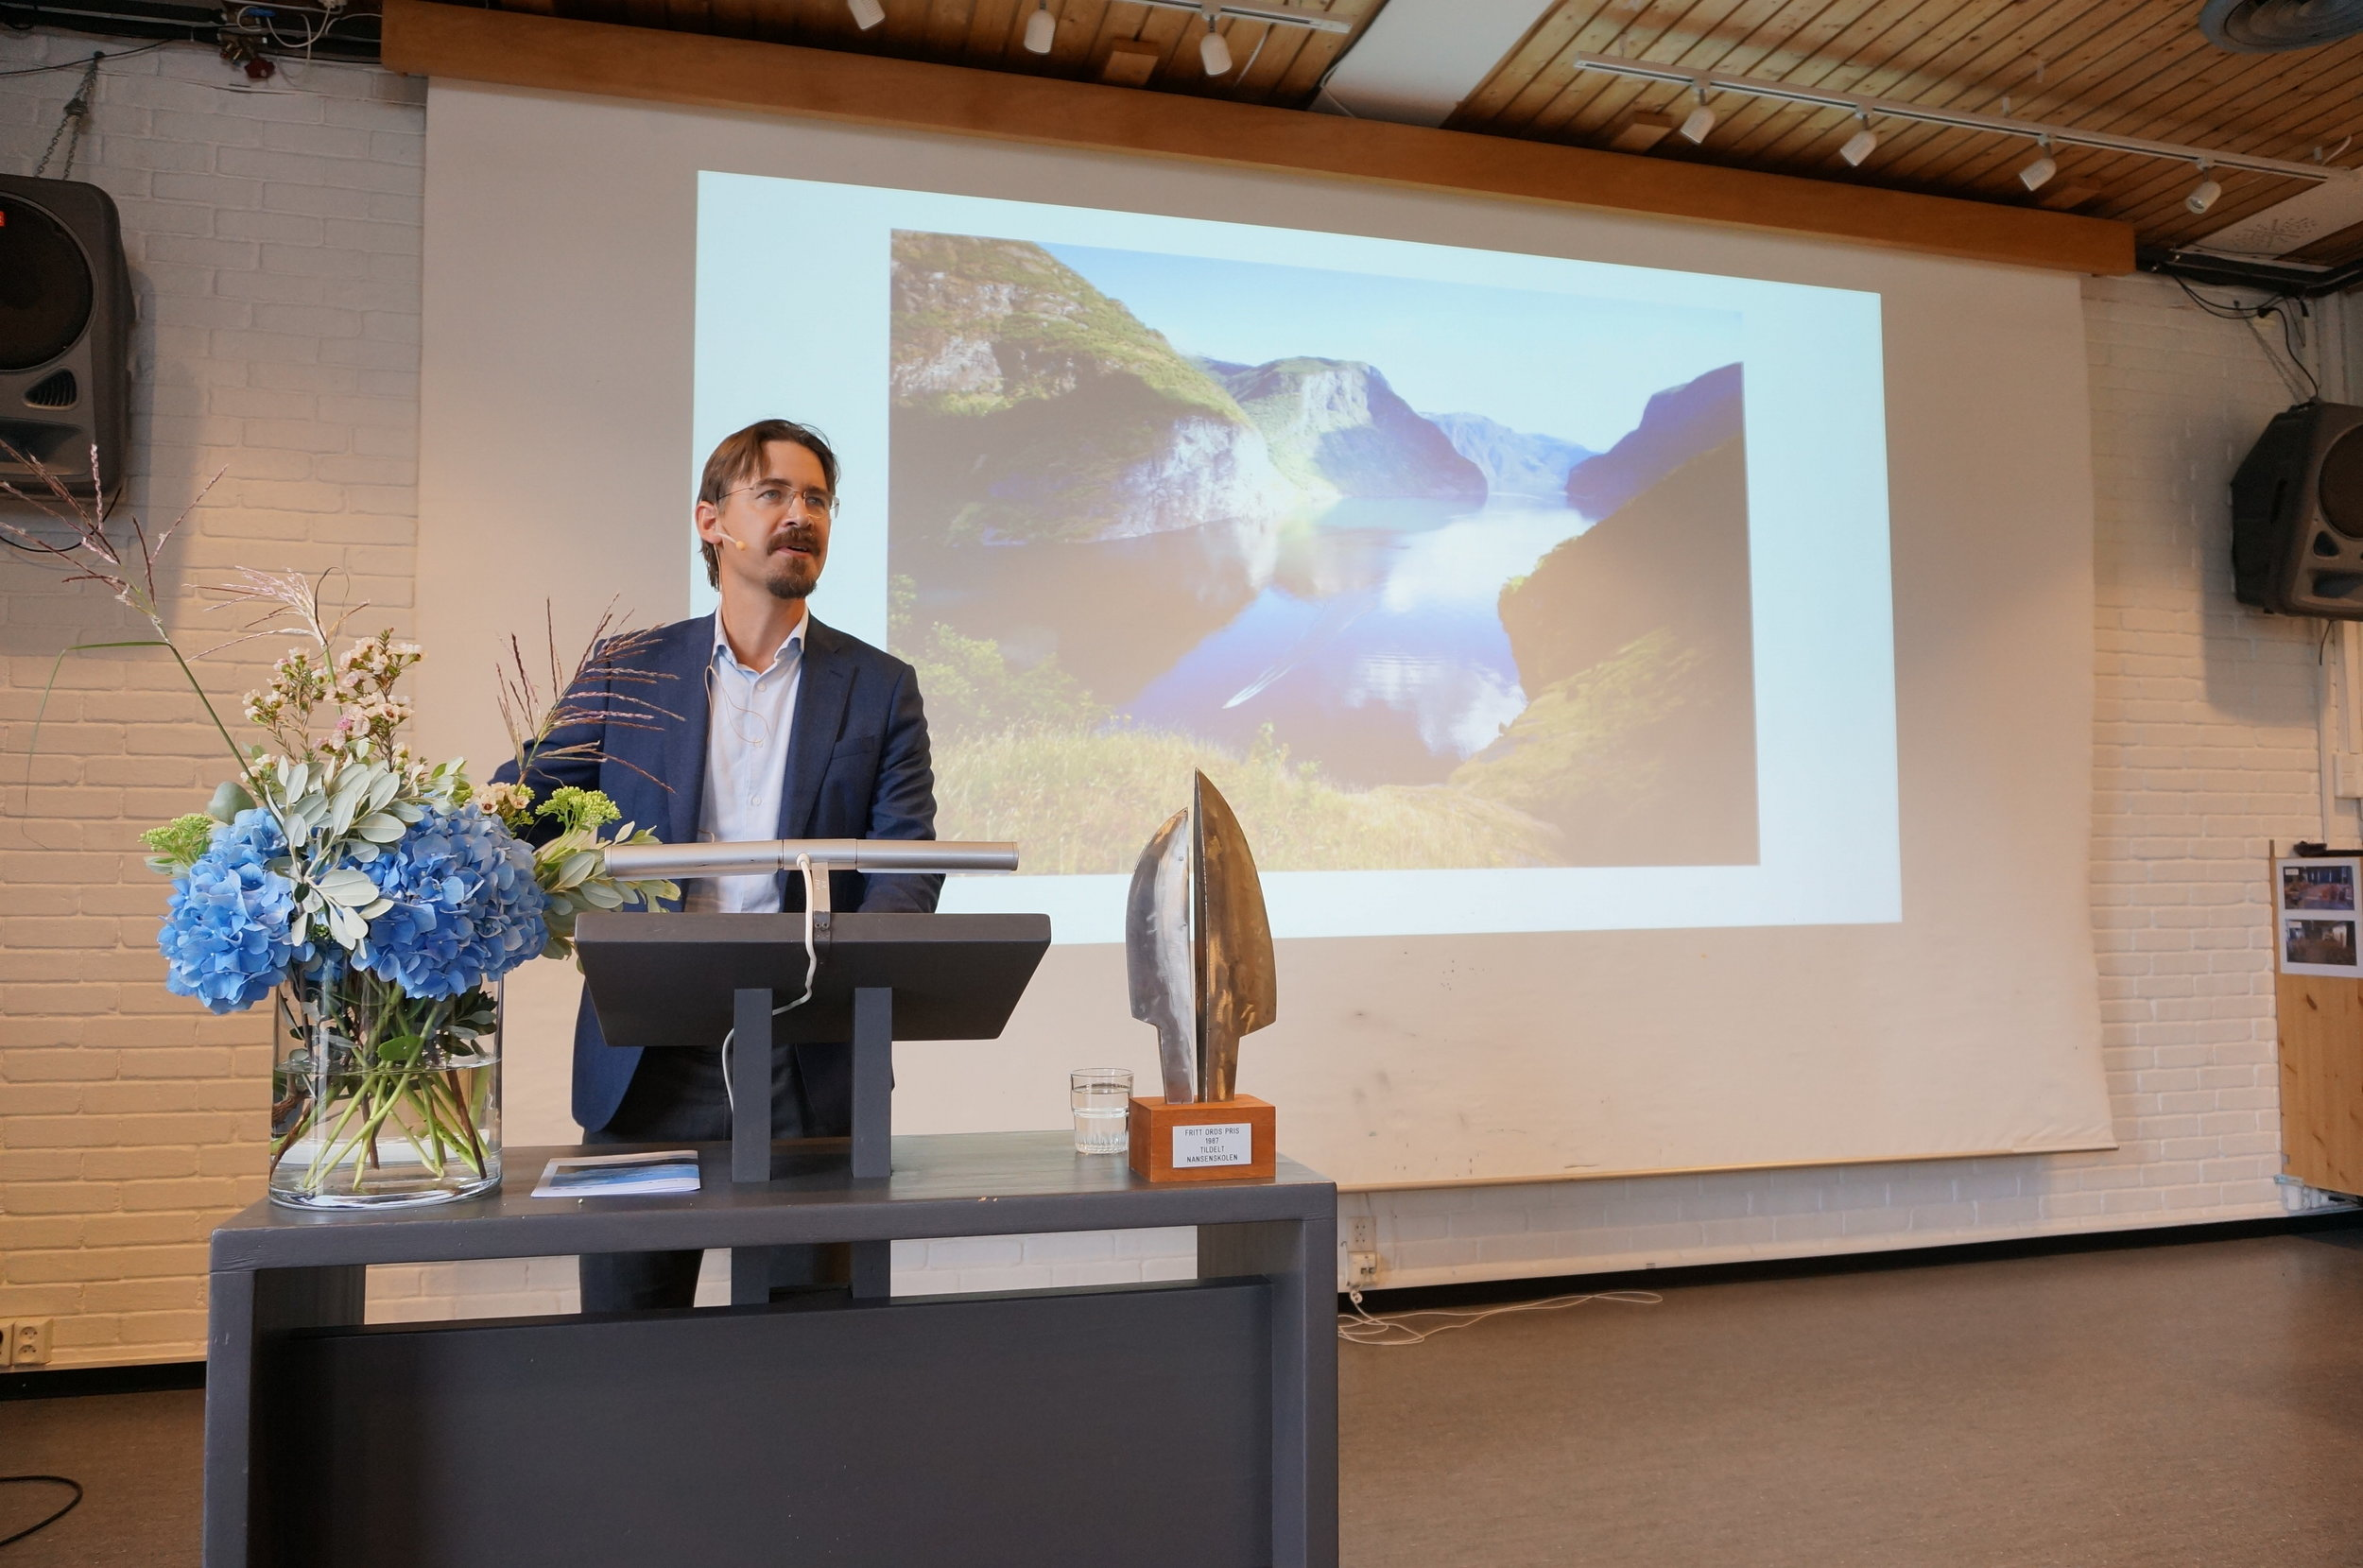 Joakim Hammerlin of Nansen Academy on the role of trust in the Nordic region